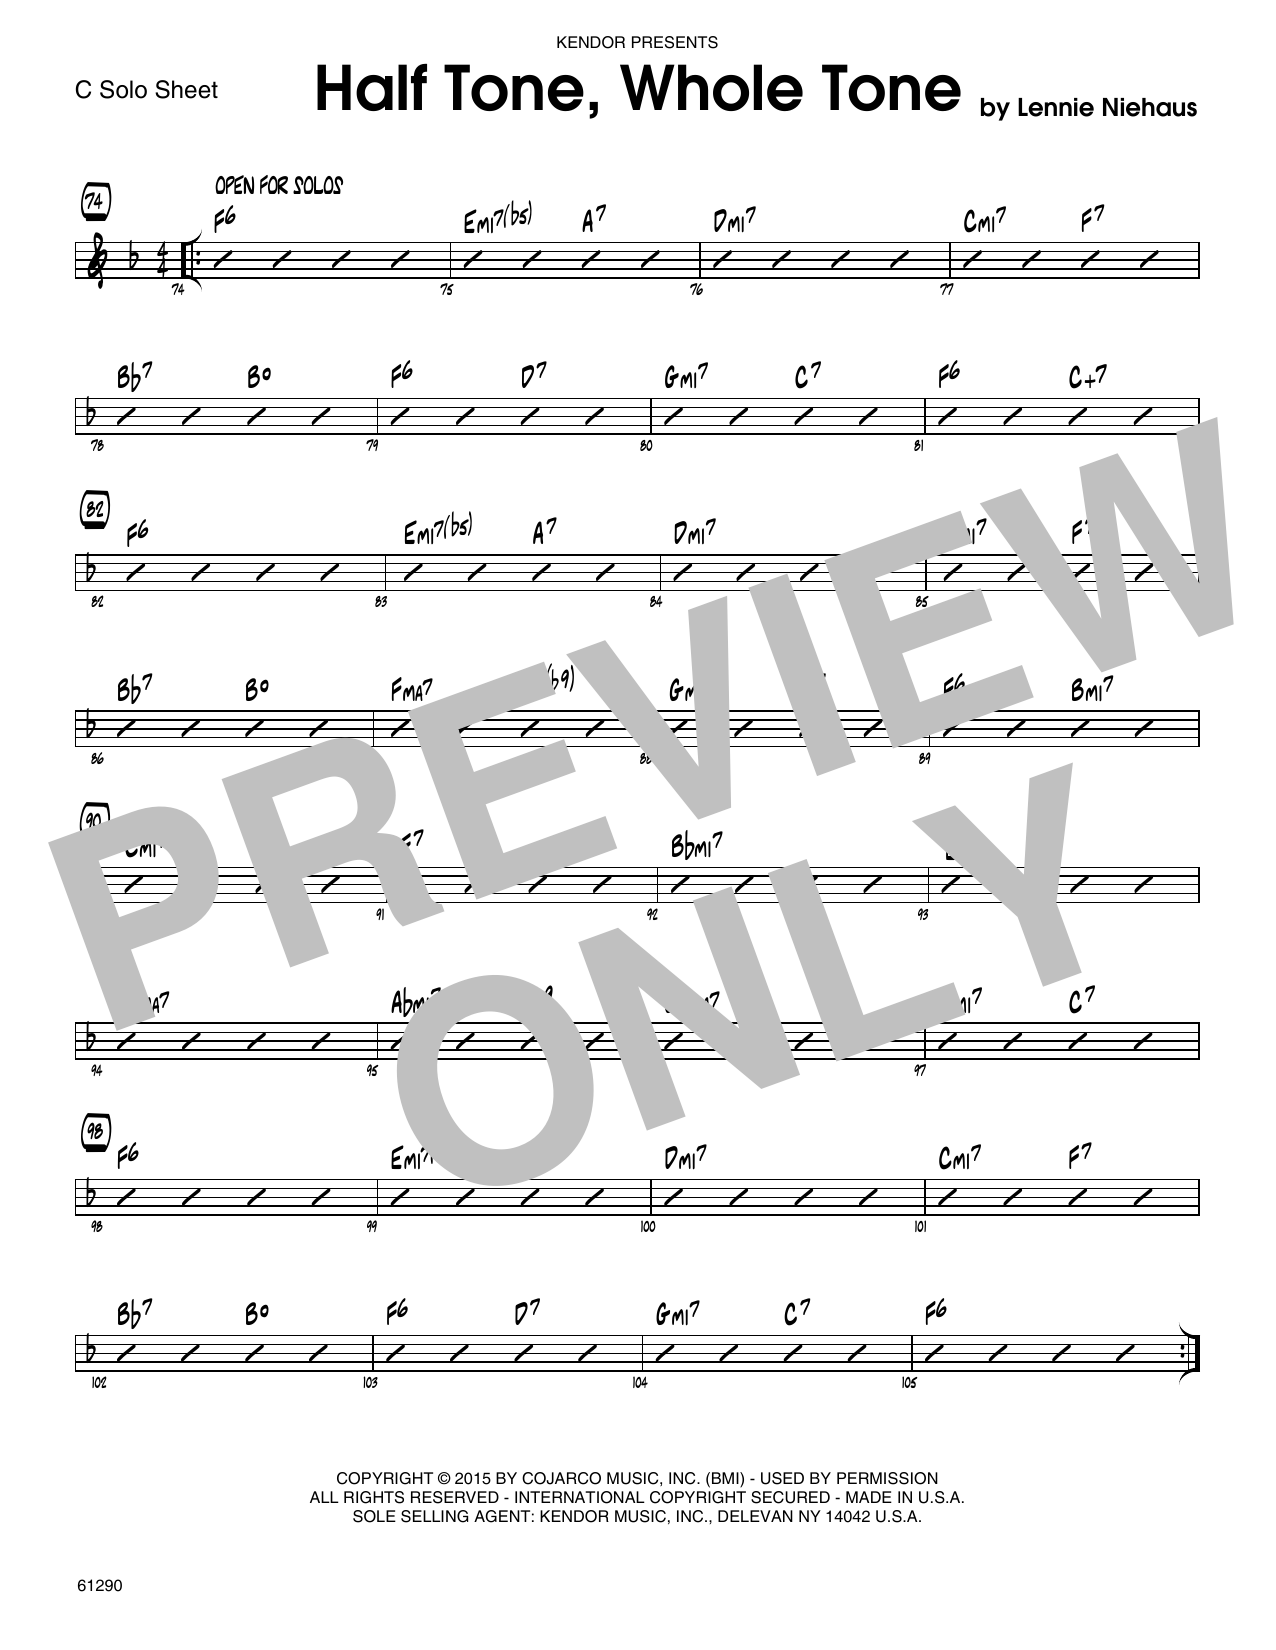 Half Tone, Whole Tone - C Solo Sheet Sheet Music